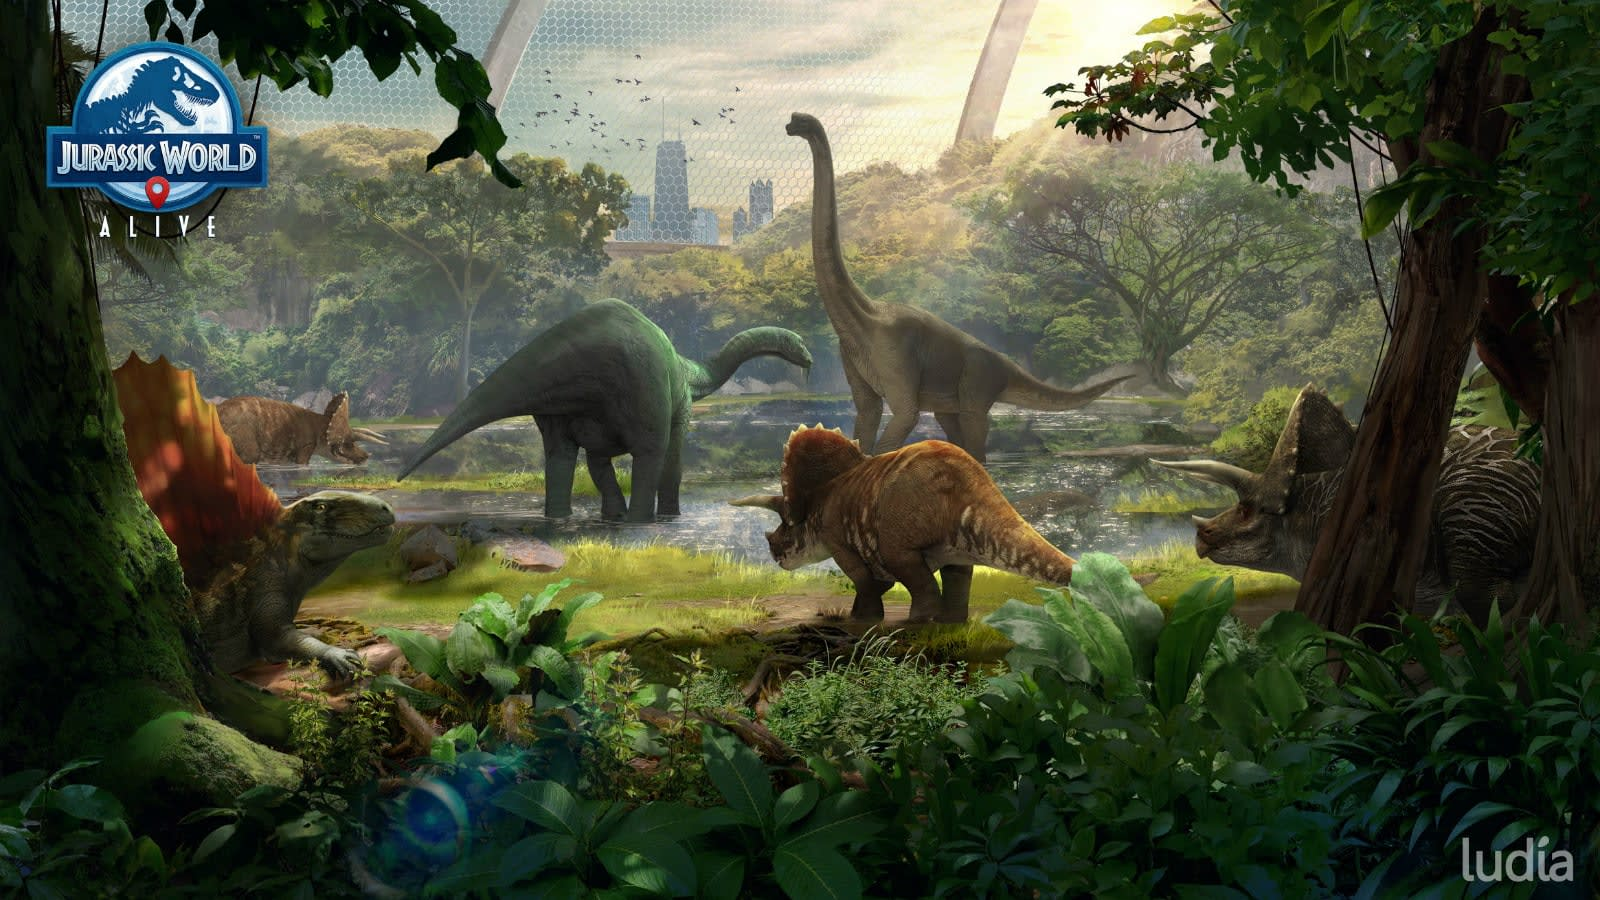 'Jurassic World Alive' update lets users feed their AR dinosaurs